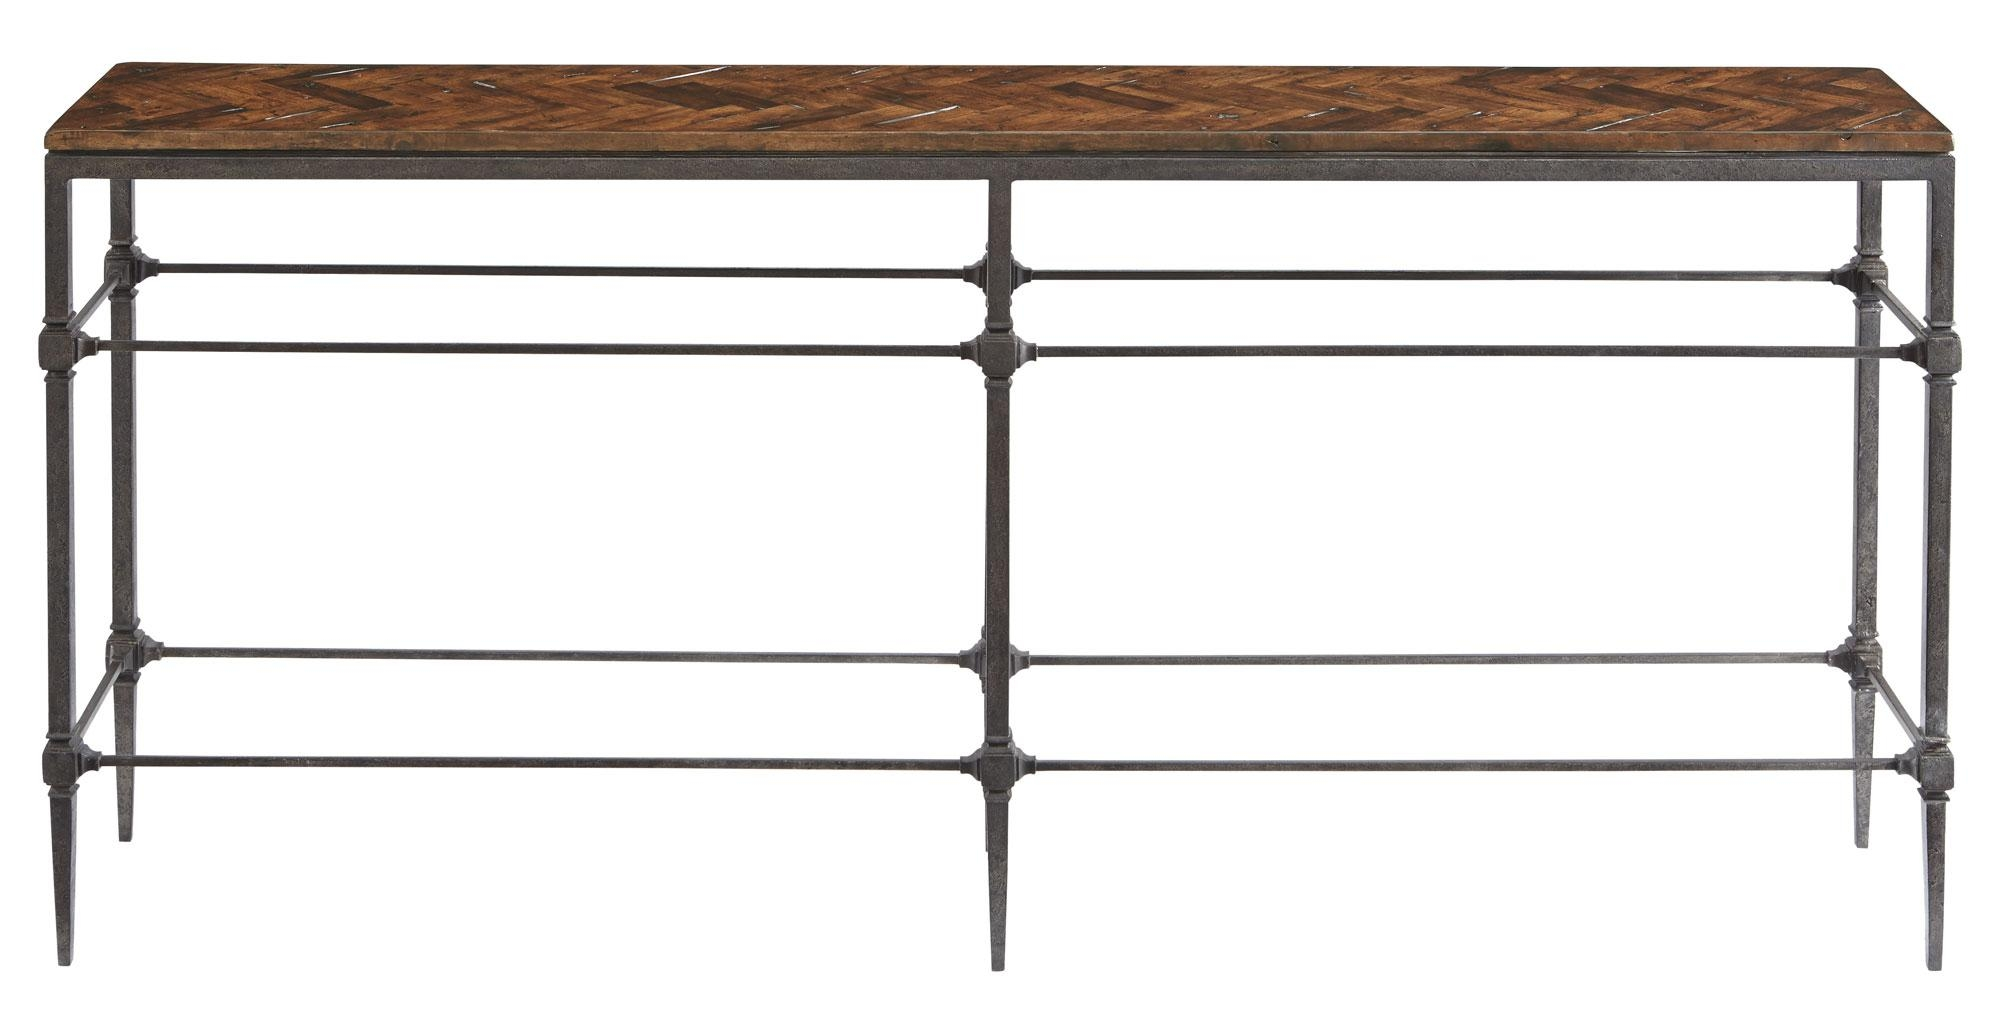 Console Table | Bernhardt Regarding Bernhardt Console Tables (View 15 of 20)